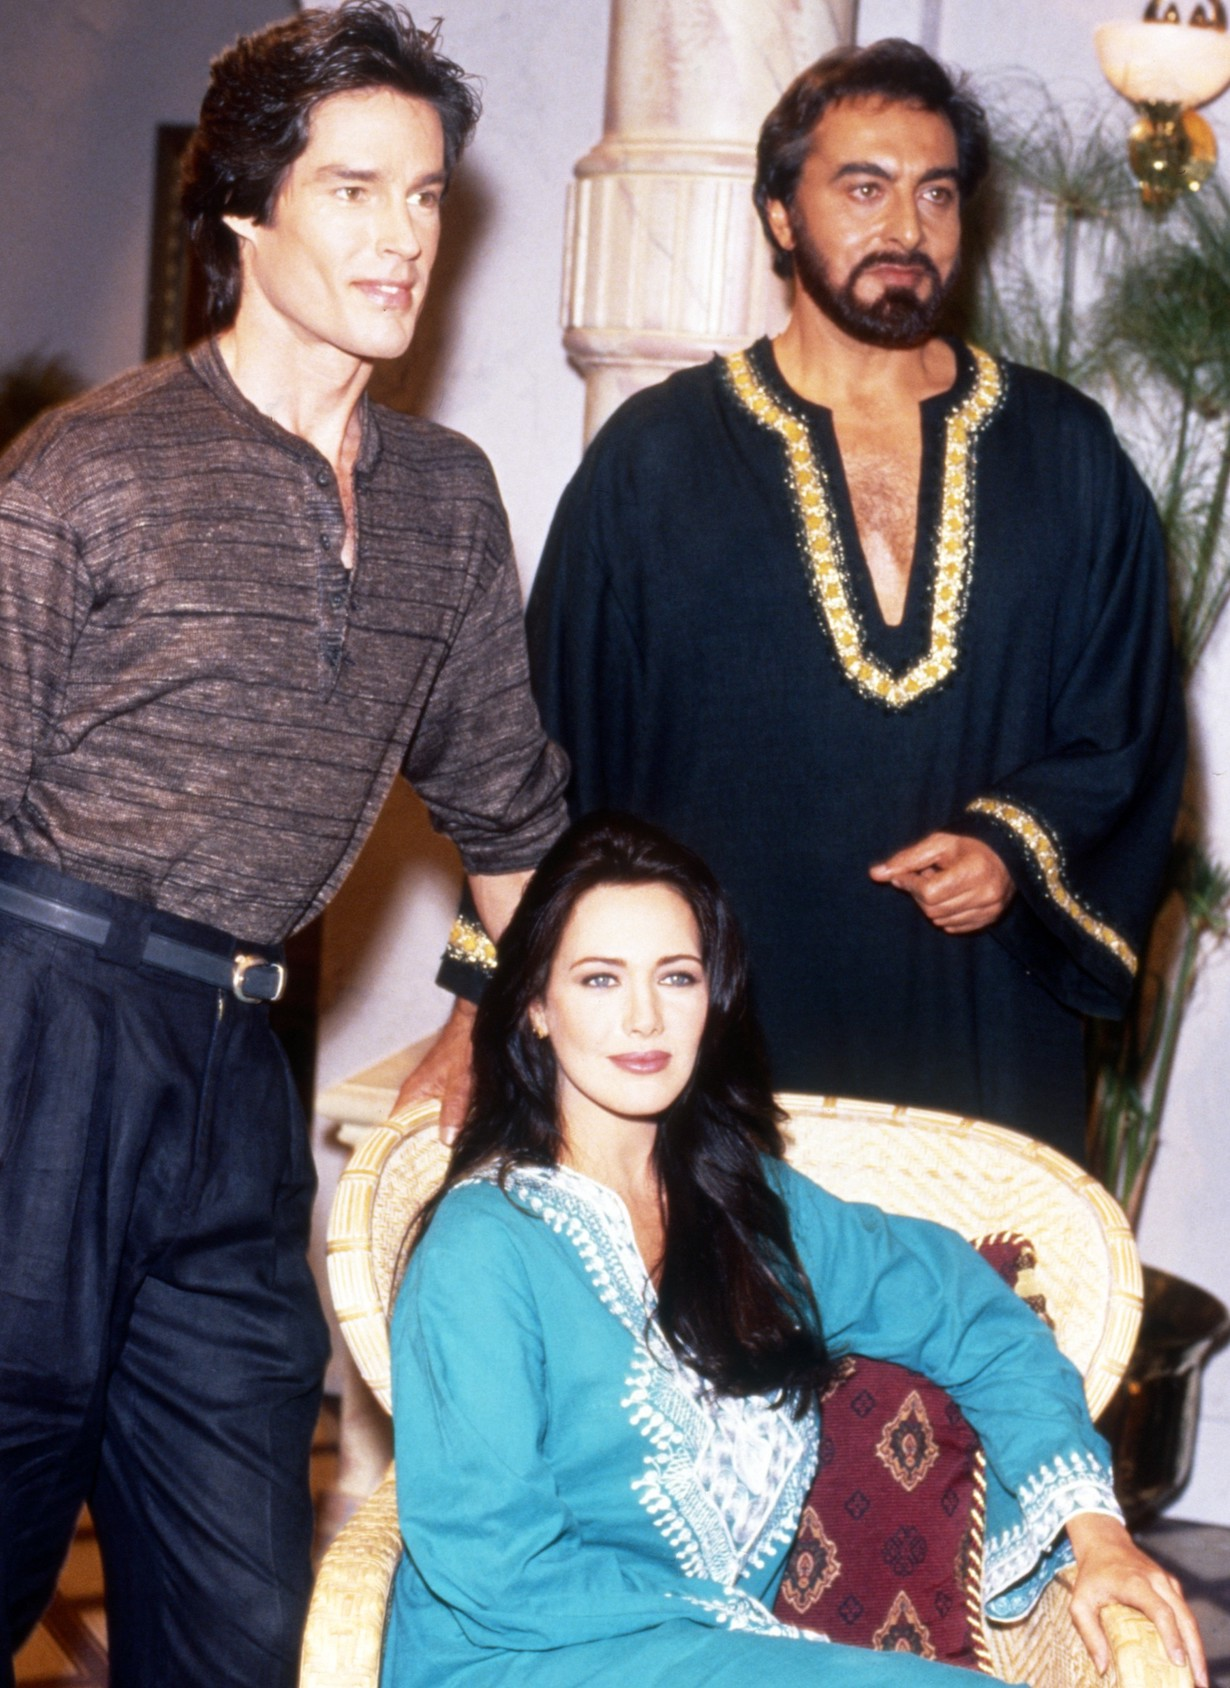 THE BOLD AND THE BEAUTIFUL, from left: Ronn Moss, Hunter Tylo, Kabir Bedi, 1990s, 1987– . /© CBS / Courtesy Everett Collection